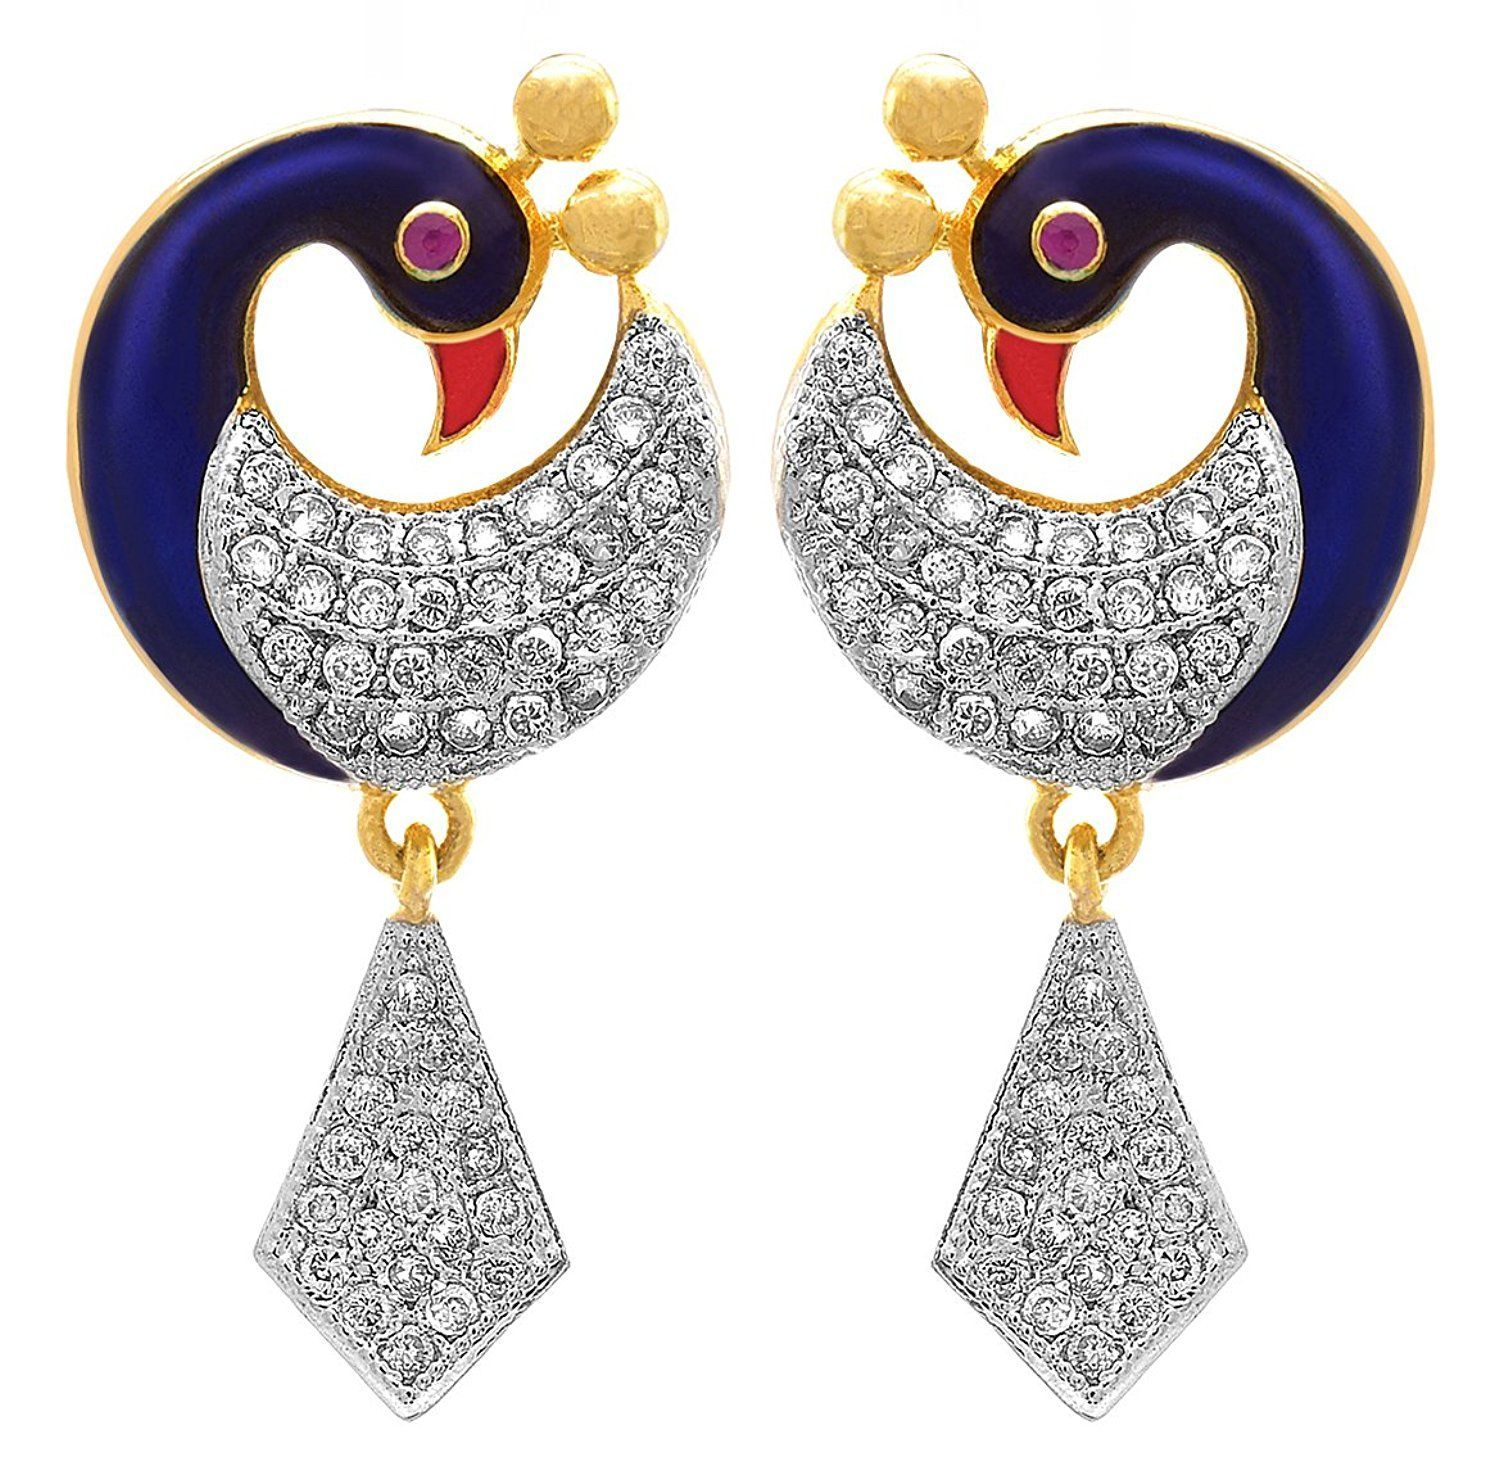 d05fca96b JFL- FUSION ETHNIC ONE GRAM GOLD PLATED MEENAKARI ENAMEL PEACOCK CZ  AMERICAN DIAMOND WITH RED / GOLD CREST DESIGNER EARRINGS FOR WOMEN & GIRLS.